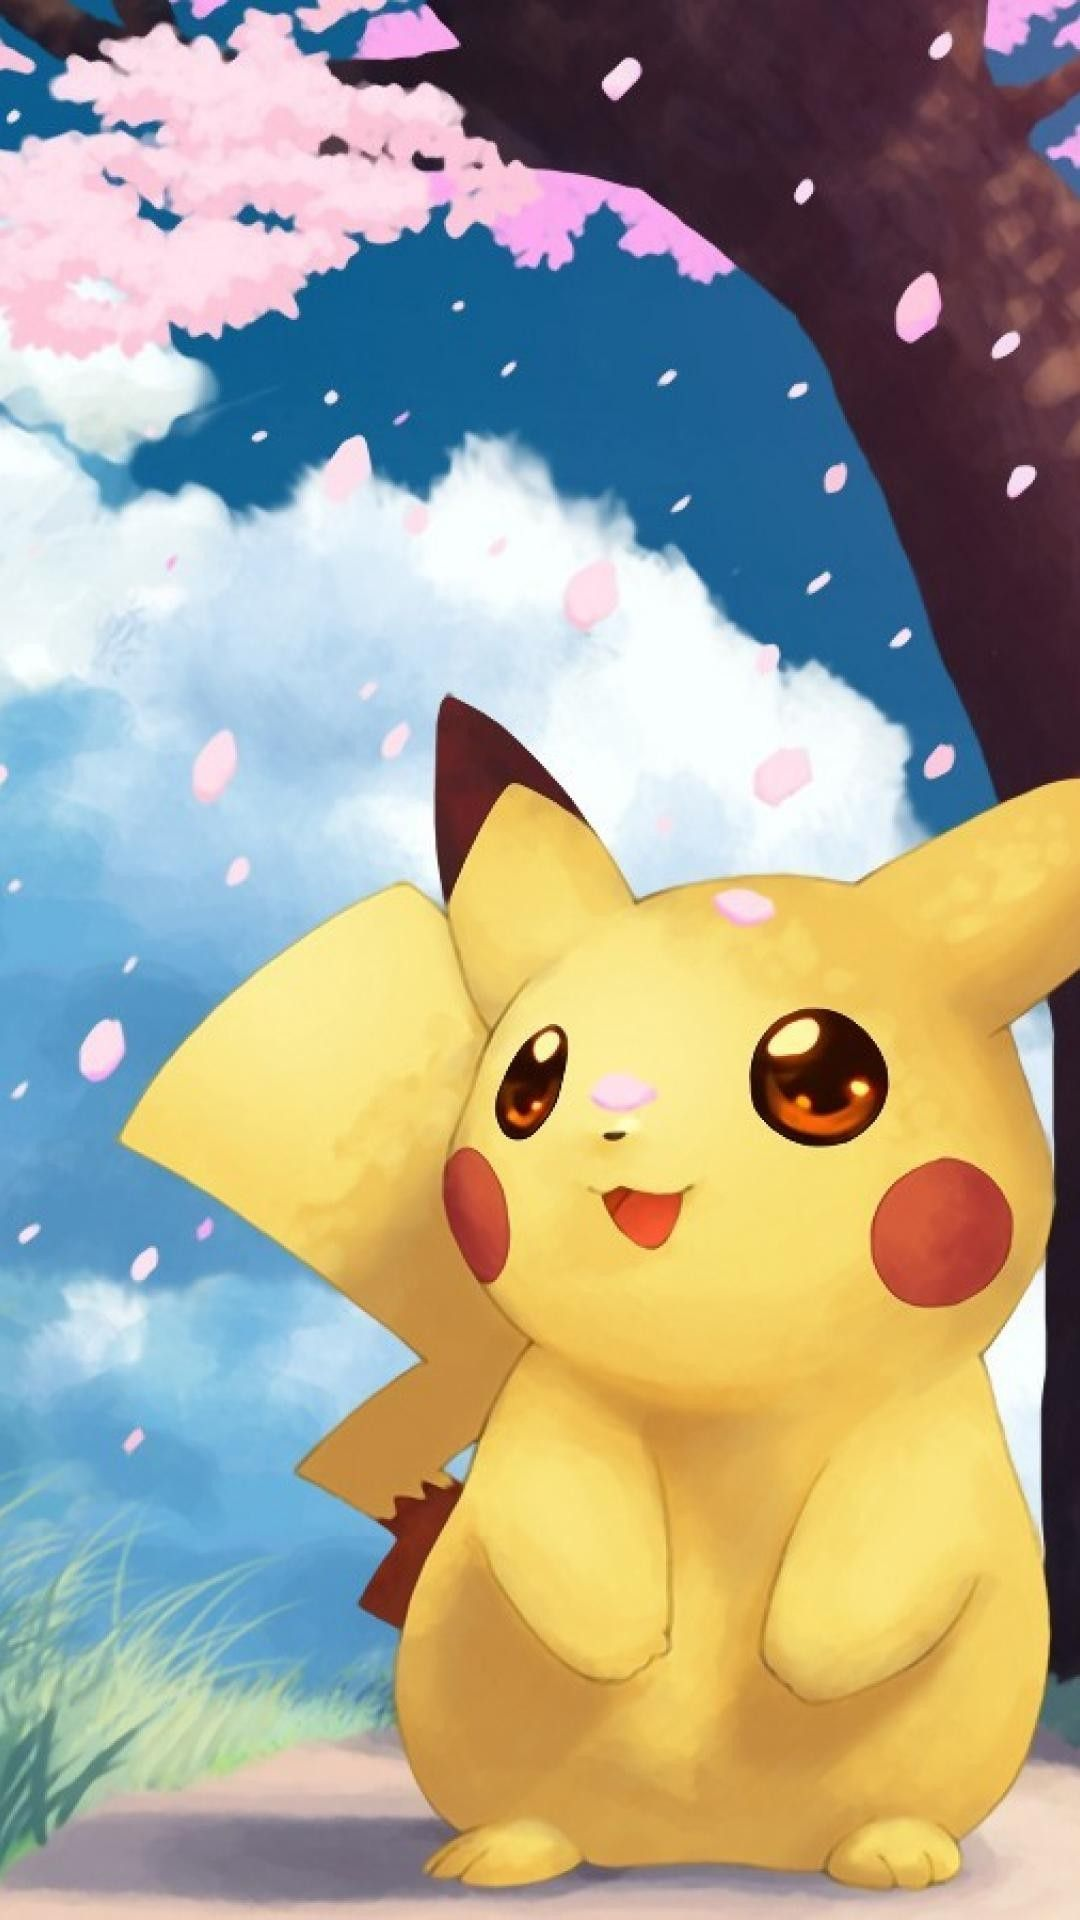 new cute pokemon wallpaper 1080x1920 high resolution